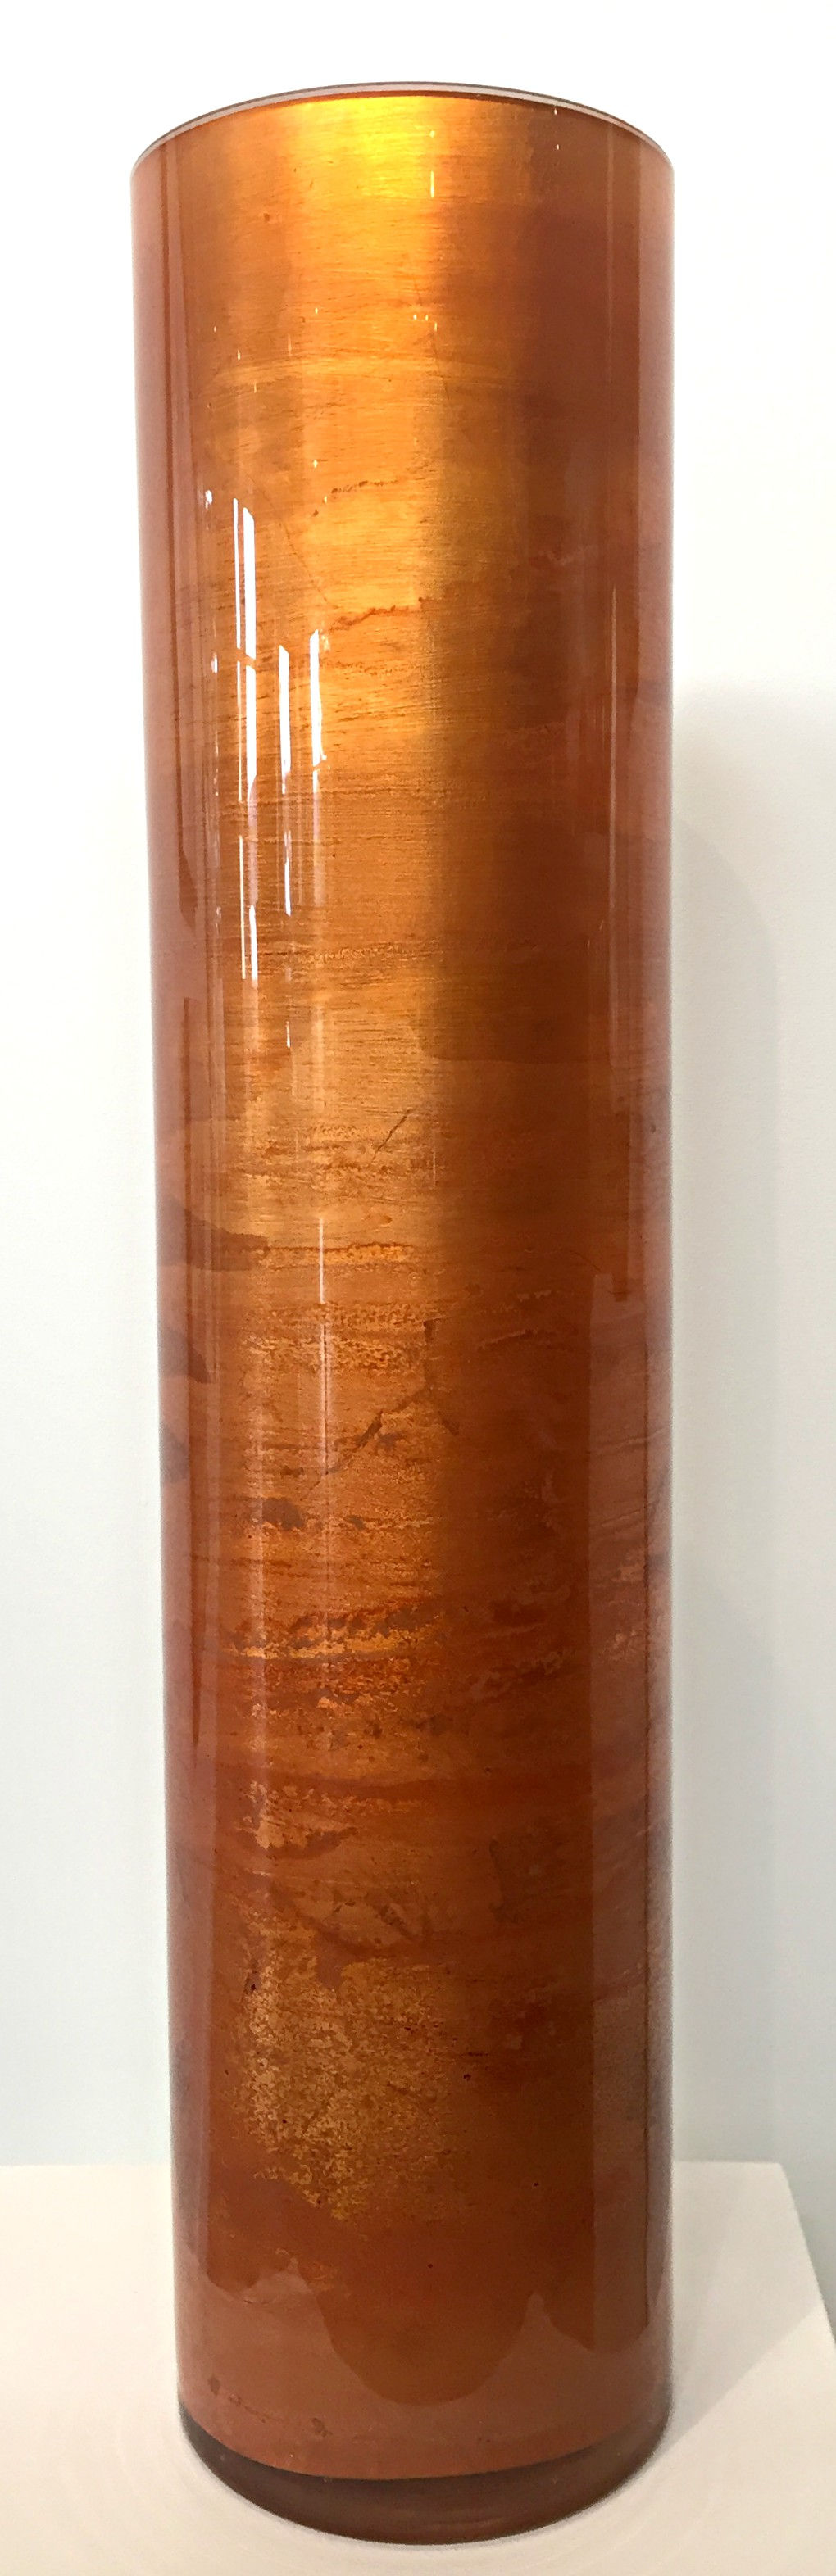 Orange Gilded Vase by David Graff | Effusion Art Gallery + Cast Glass Studio, Invermere BC